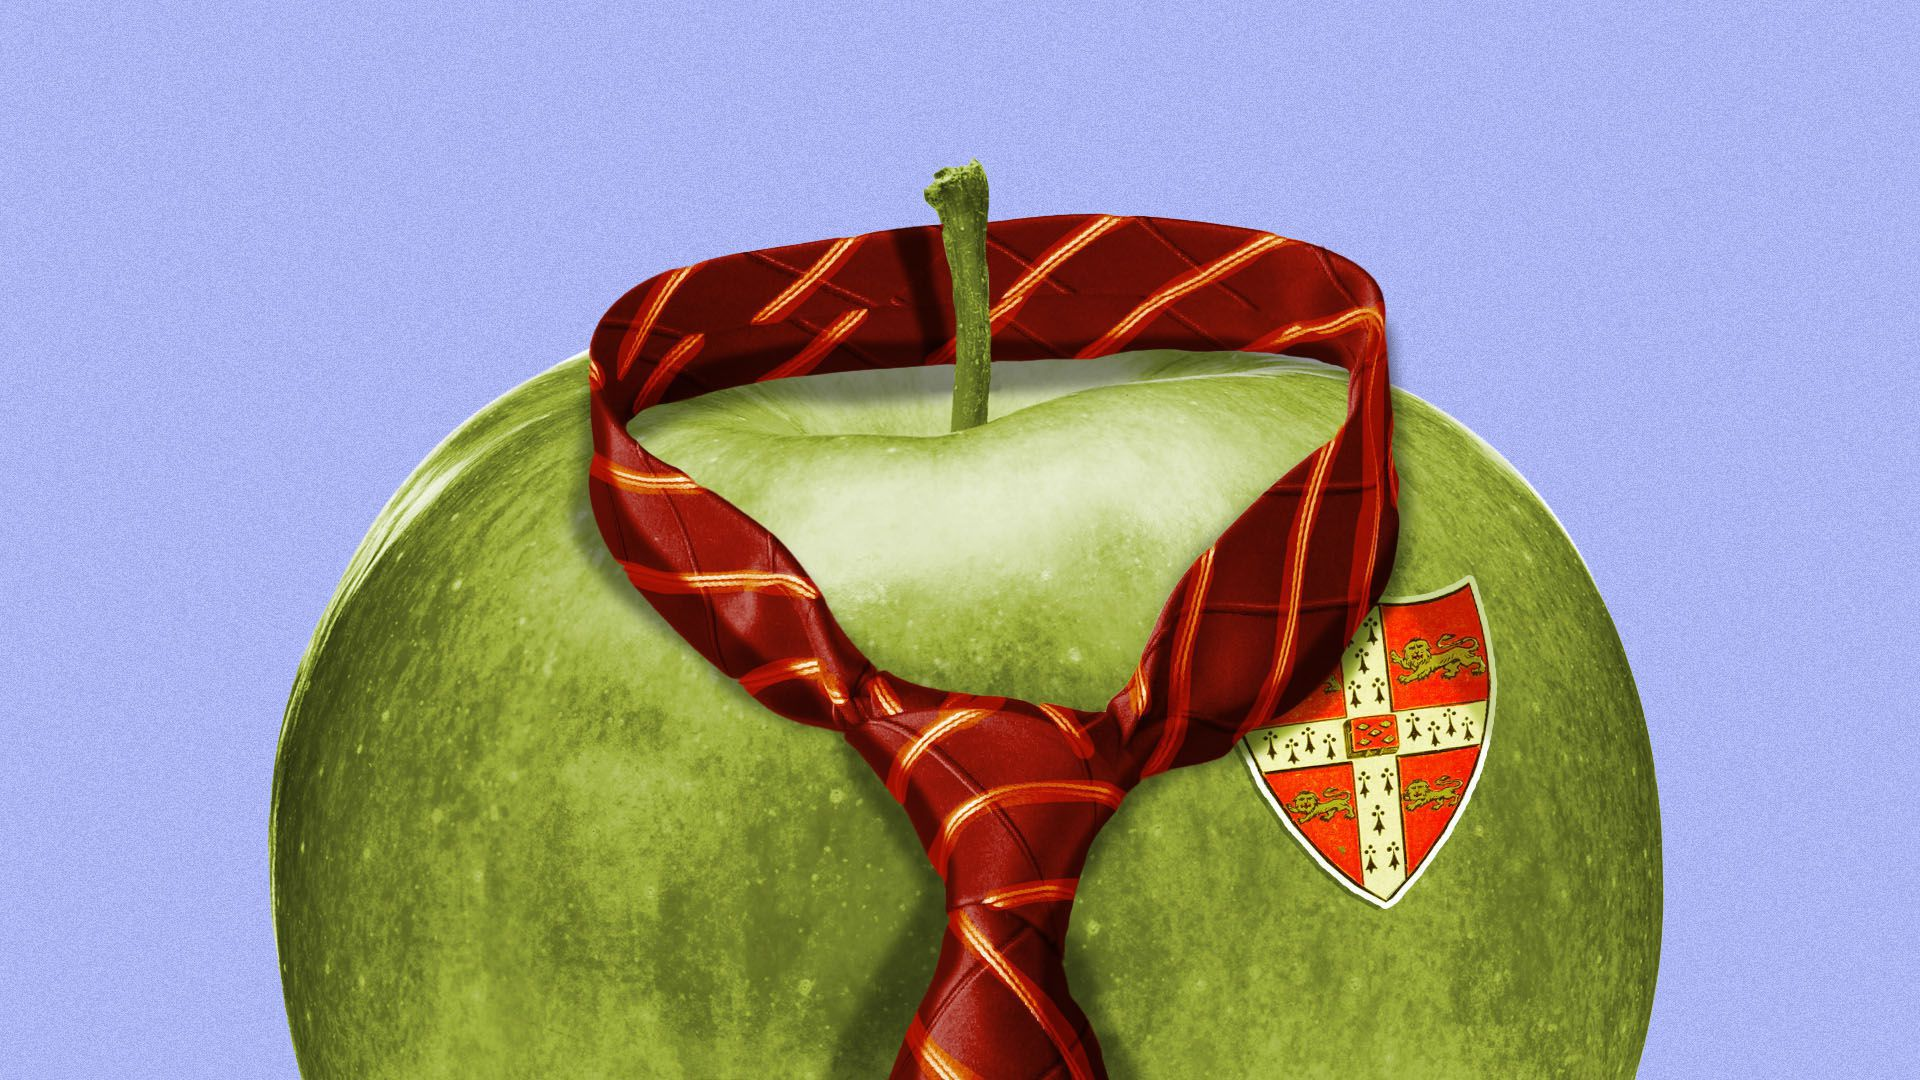 Illustration of an apple wearing a private school tie and emblem